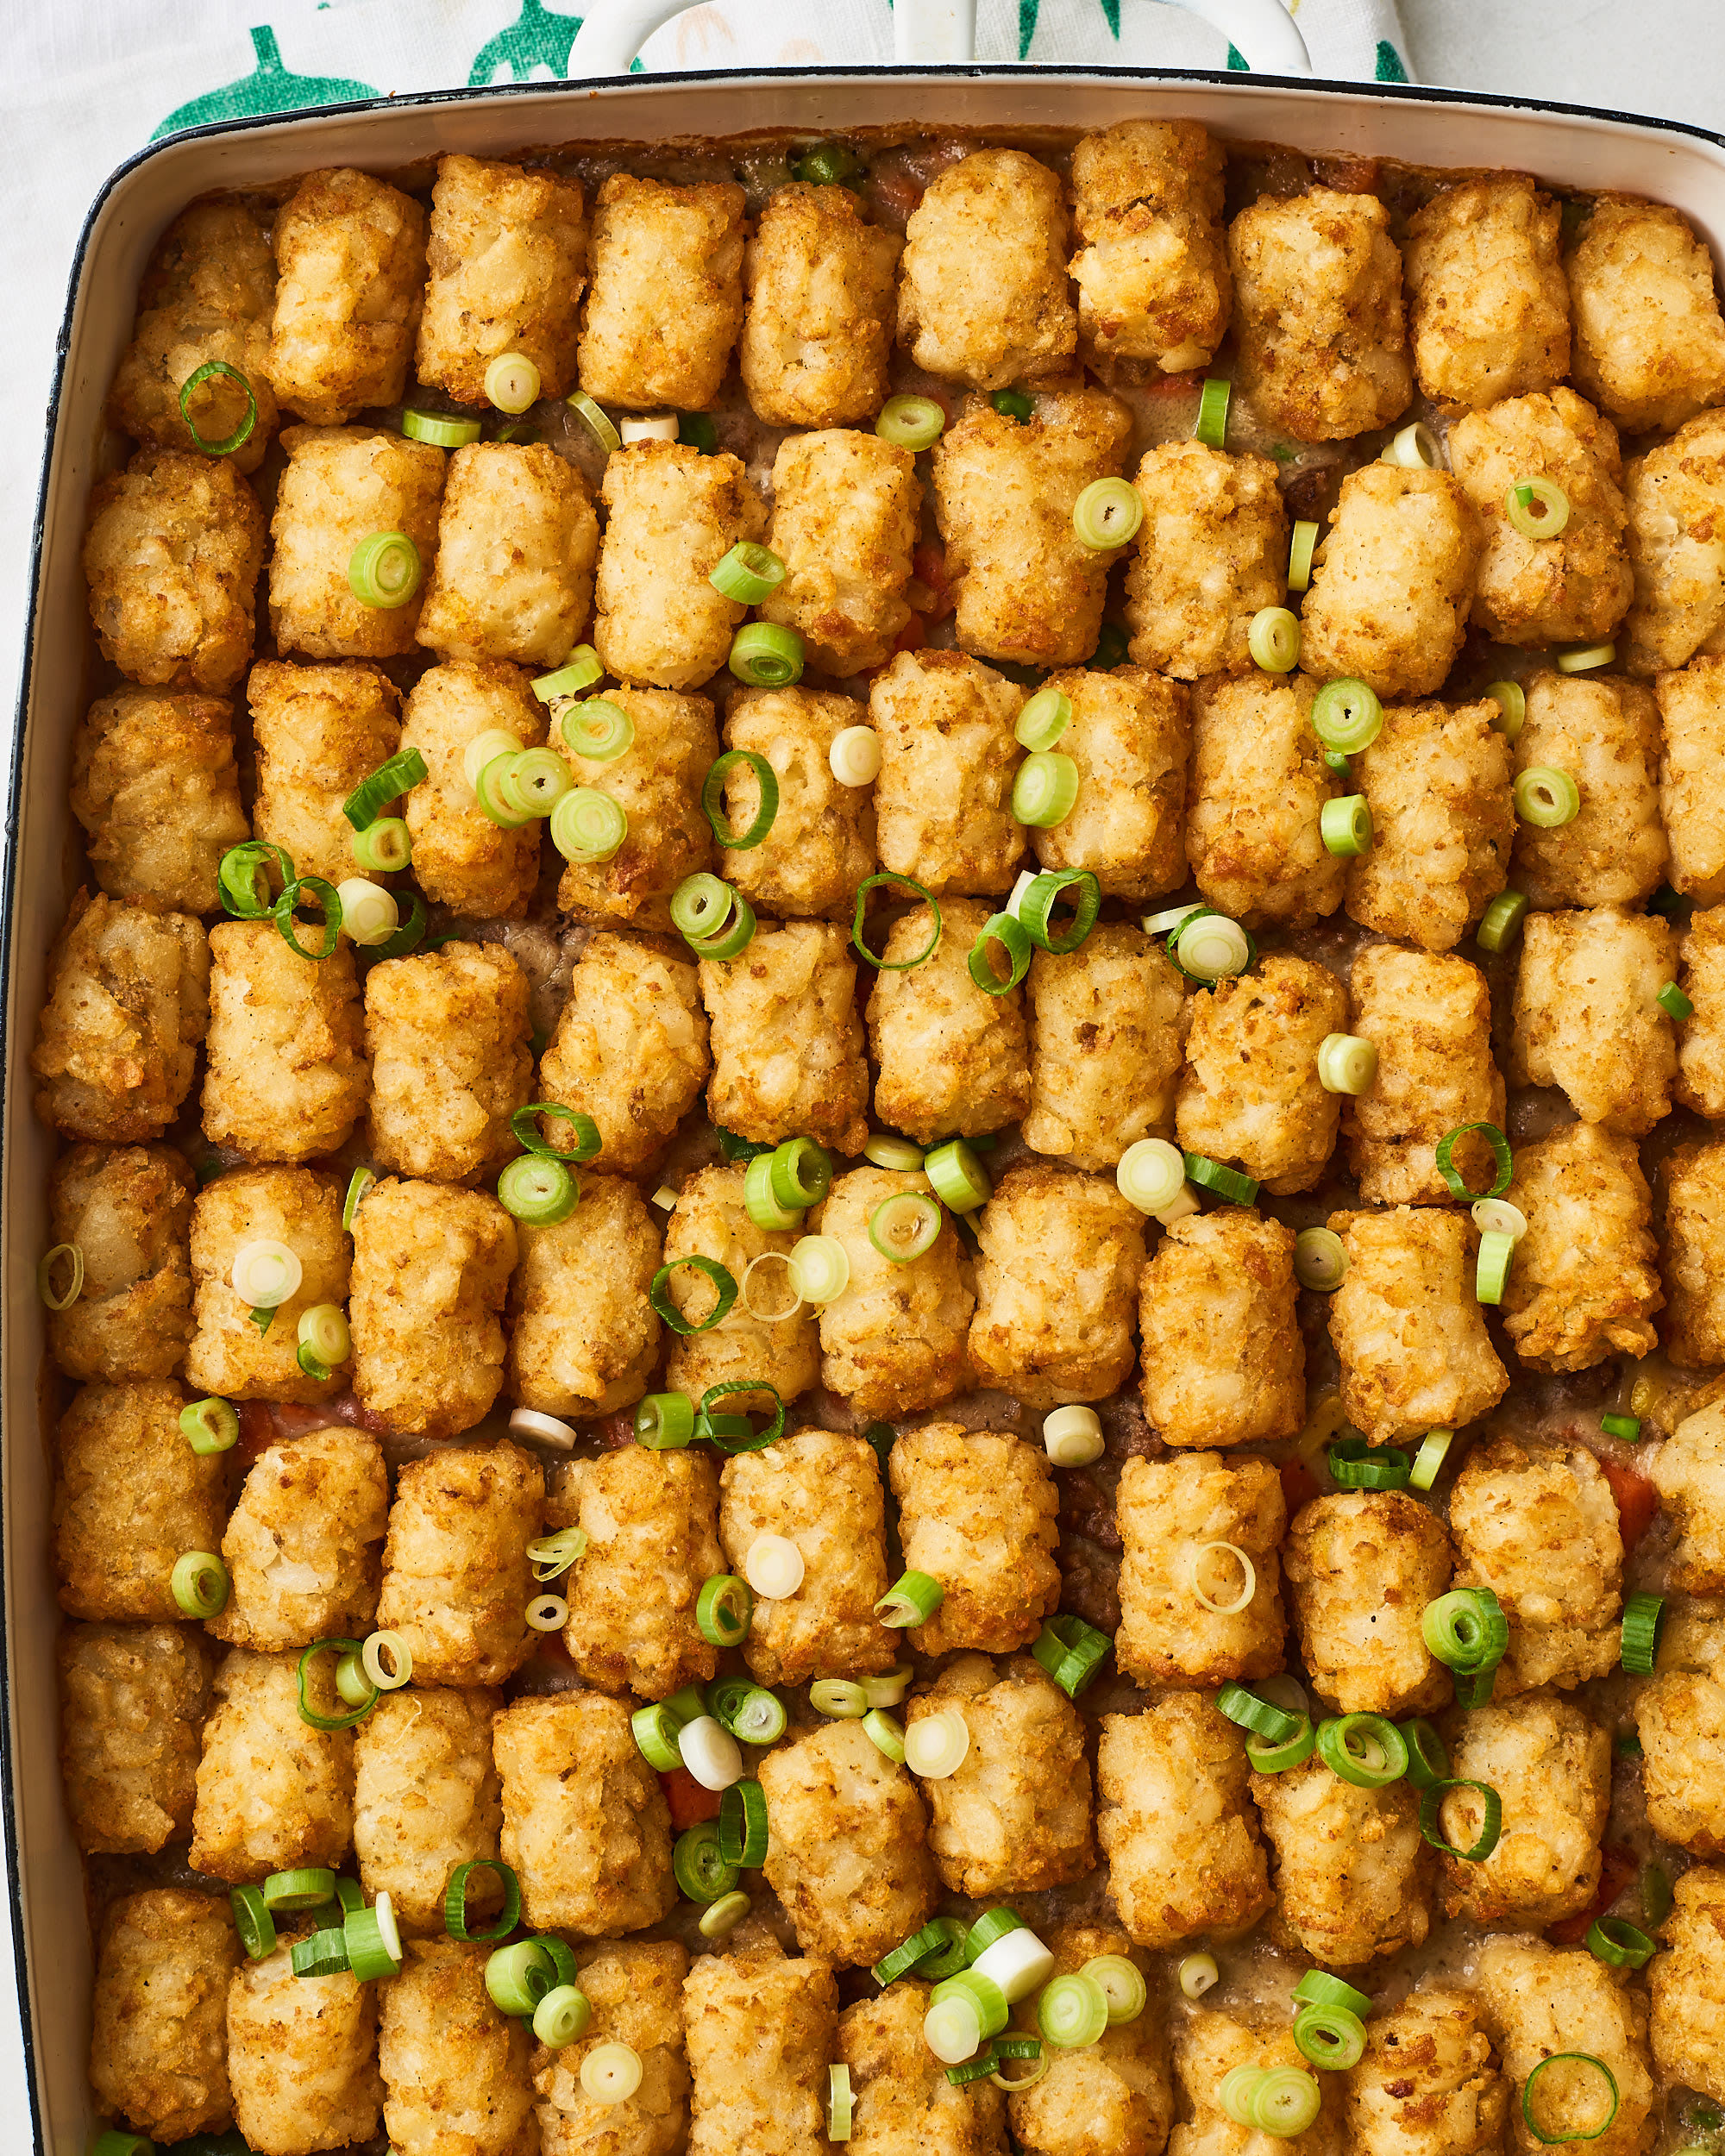 Easy Tater Tot Casserole | Kitchn